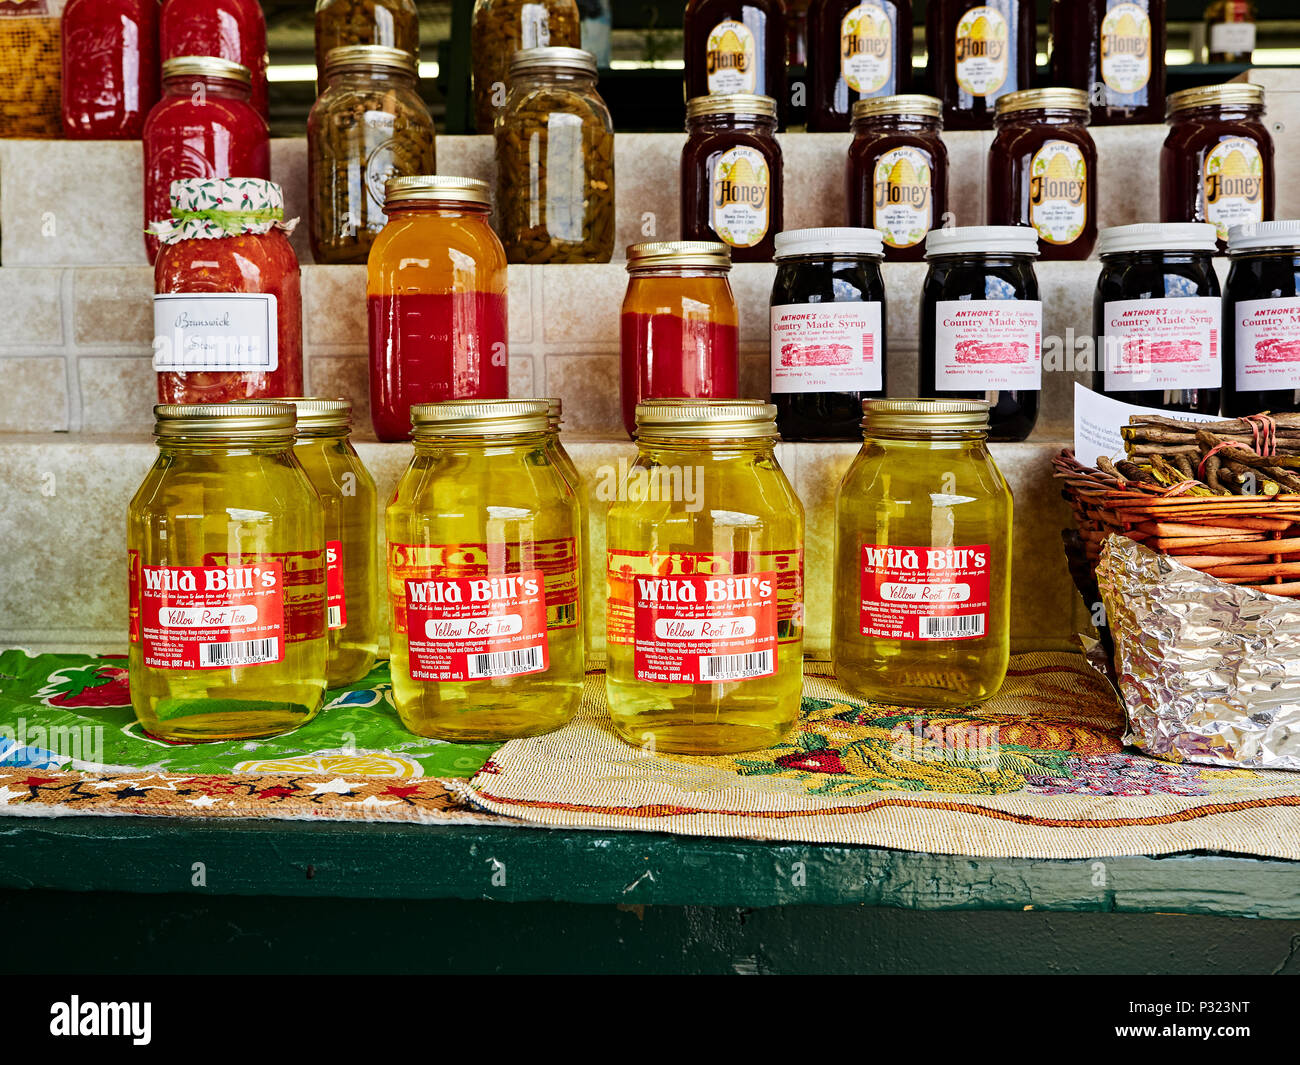 Jars of Yellow Root Tea, a homemade alternative medicine for some, or a home remedy or homeopathic treatment on display at an indoor farmer's market. - Stock Image